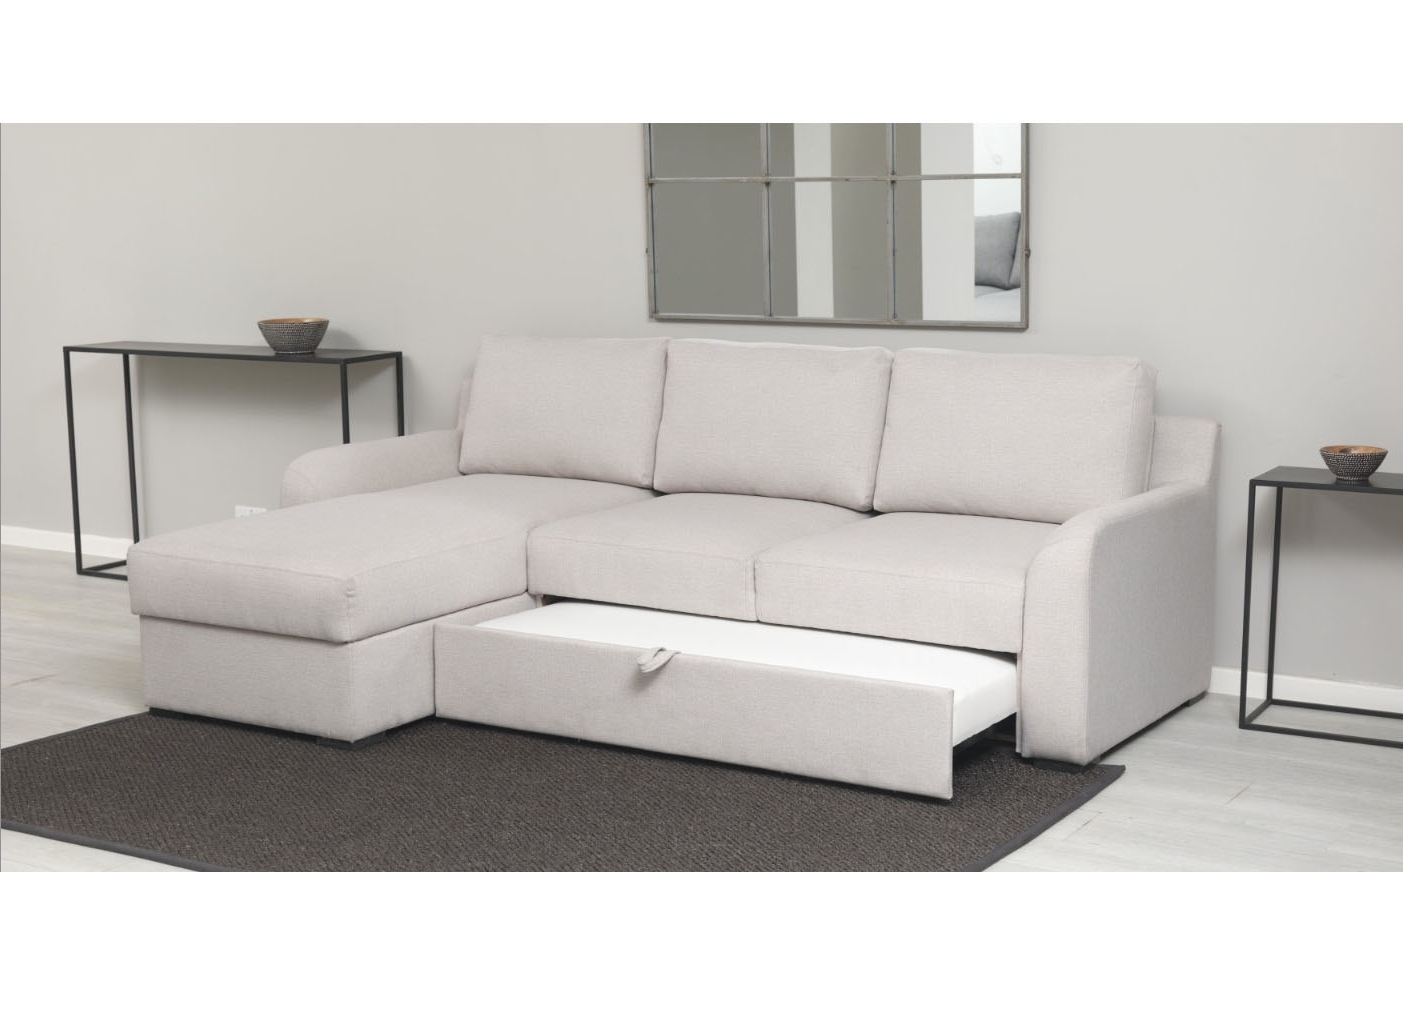 Sofabeds With Chaise With Regard To Popular Abbey Sofabed With Chaise & Storage – Aflair For Home (View 8 of 15)